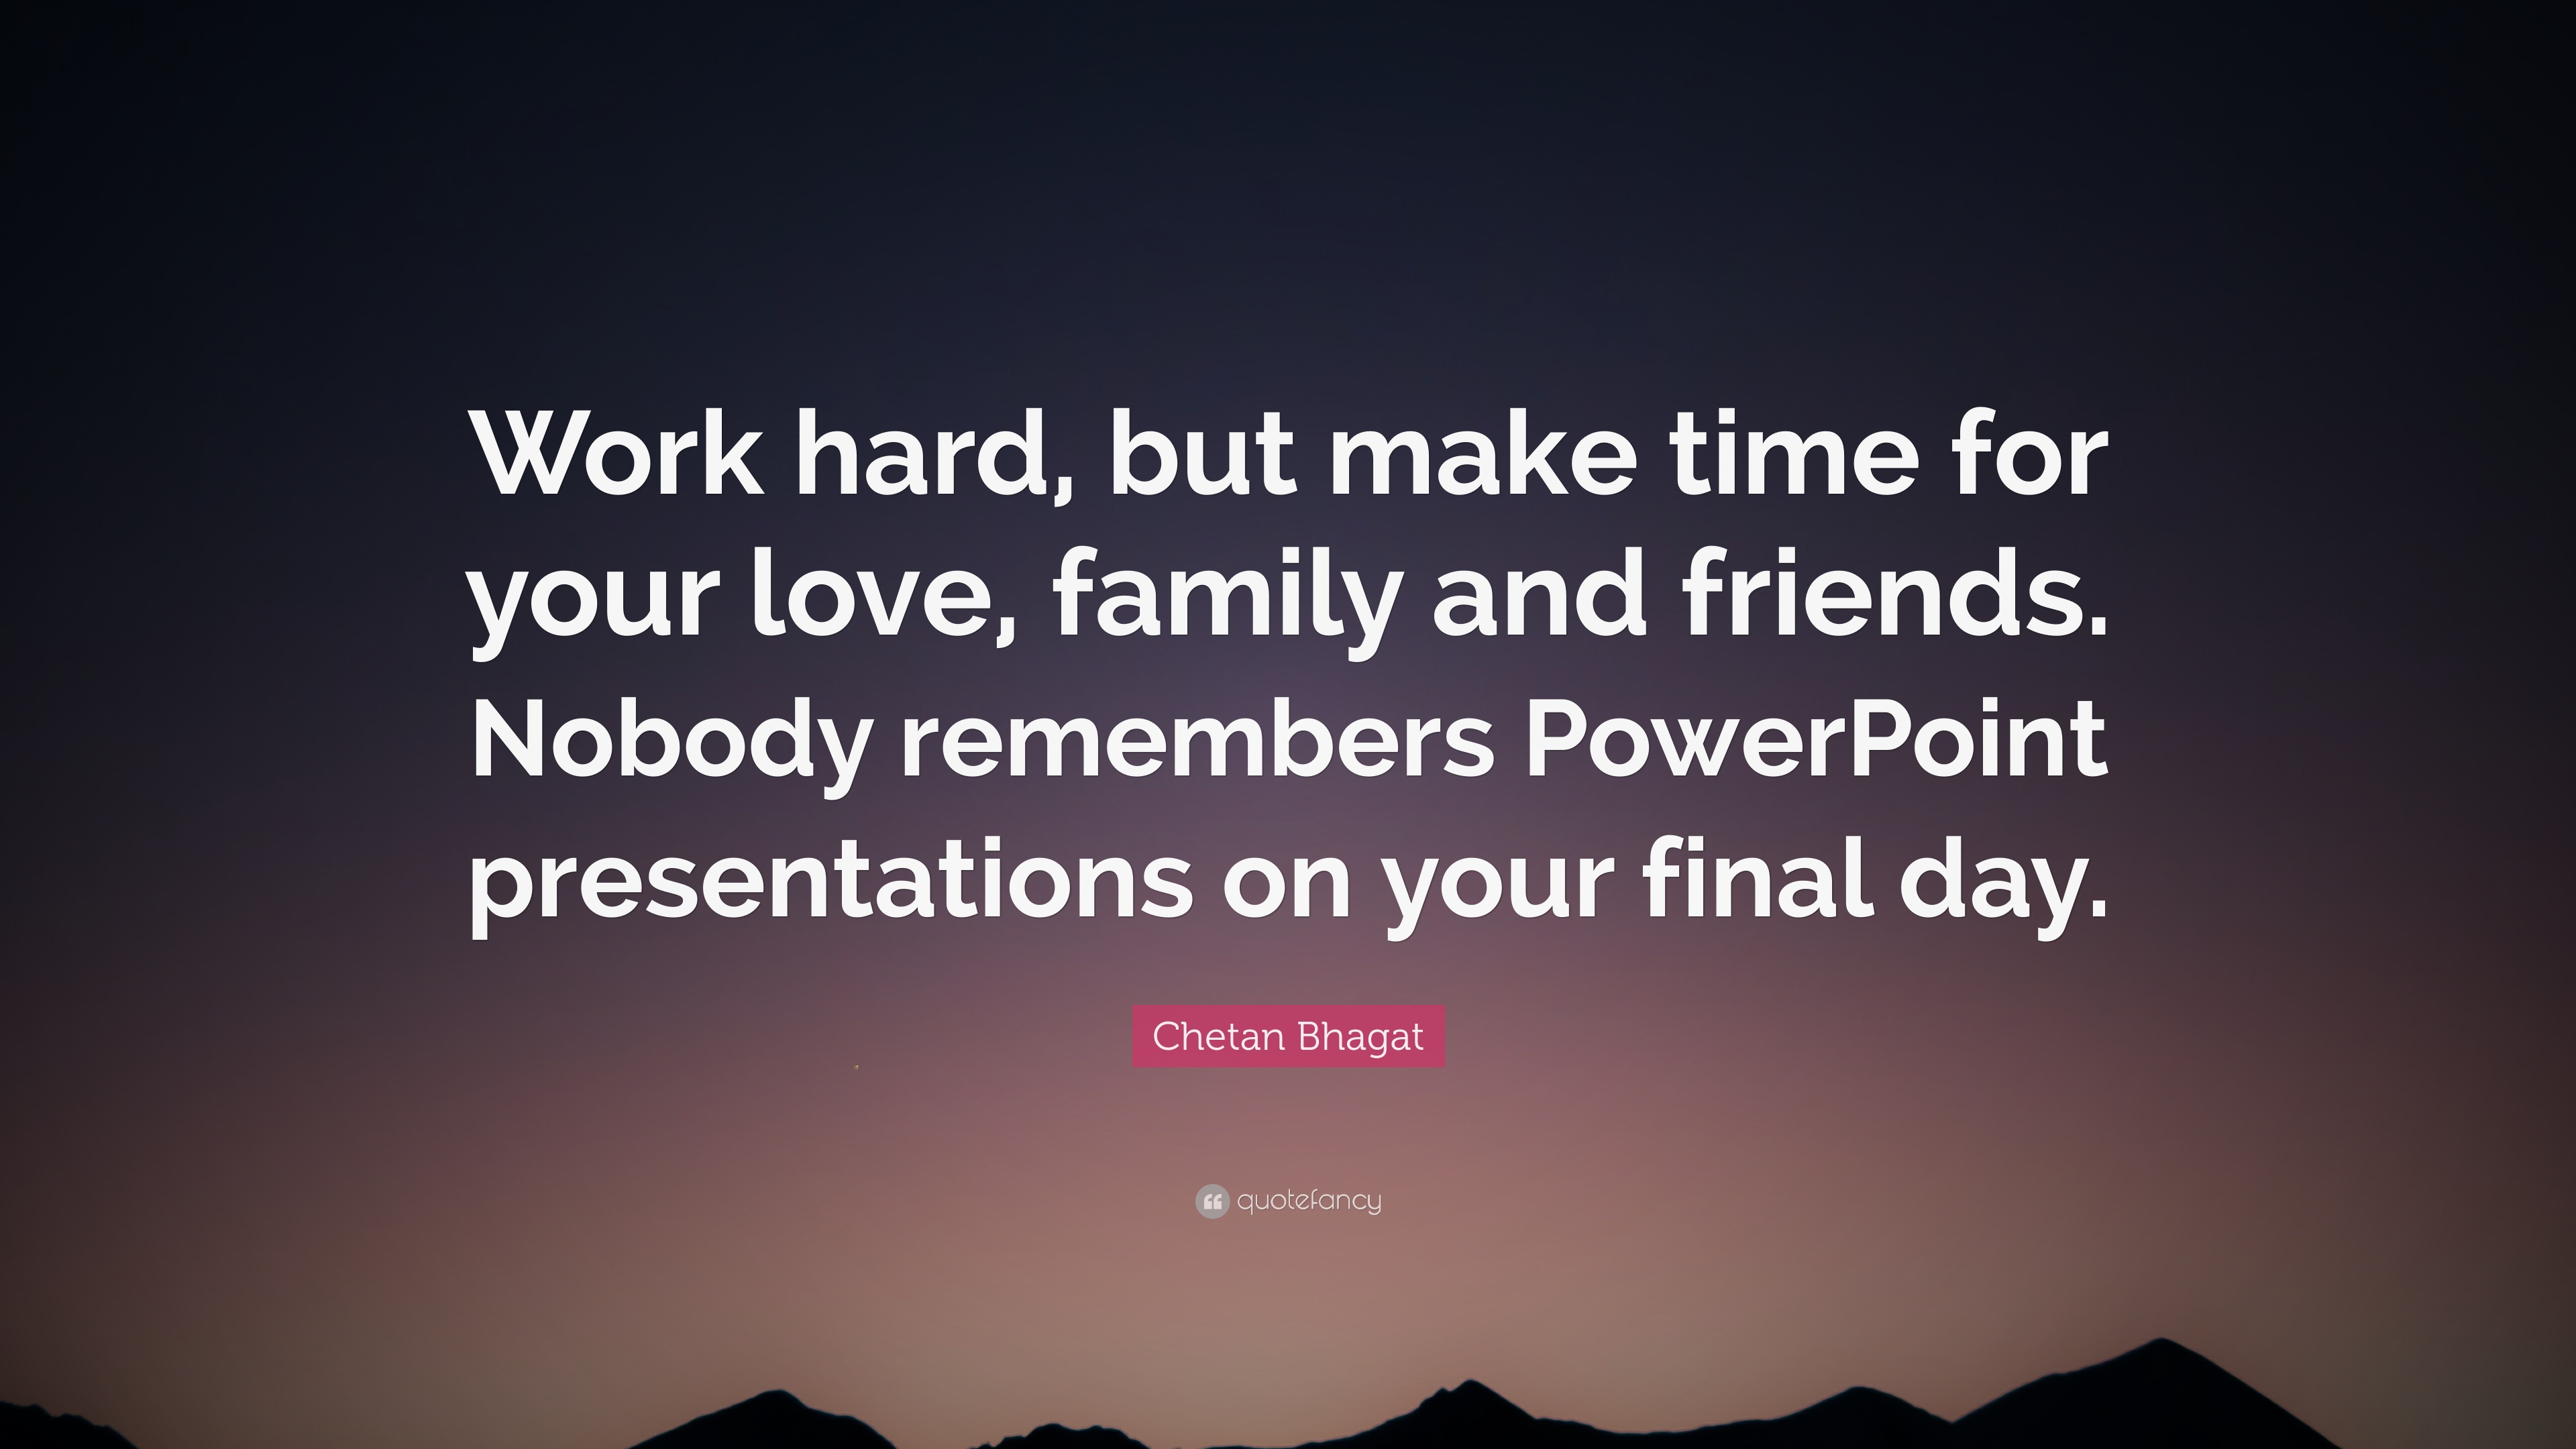 """chetan bhagat quote """"work hard but make time for your love"""